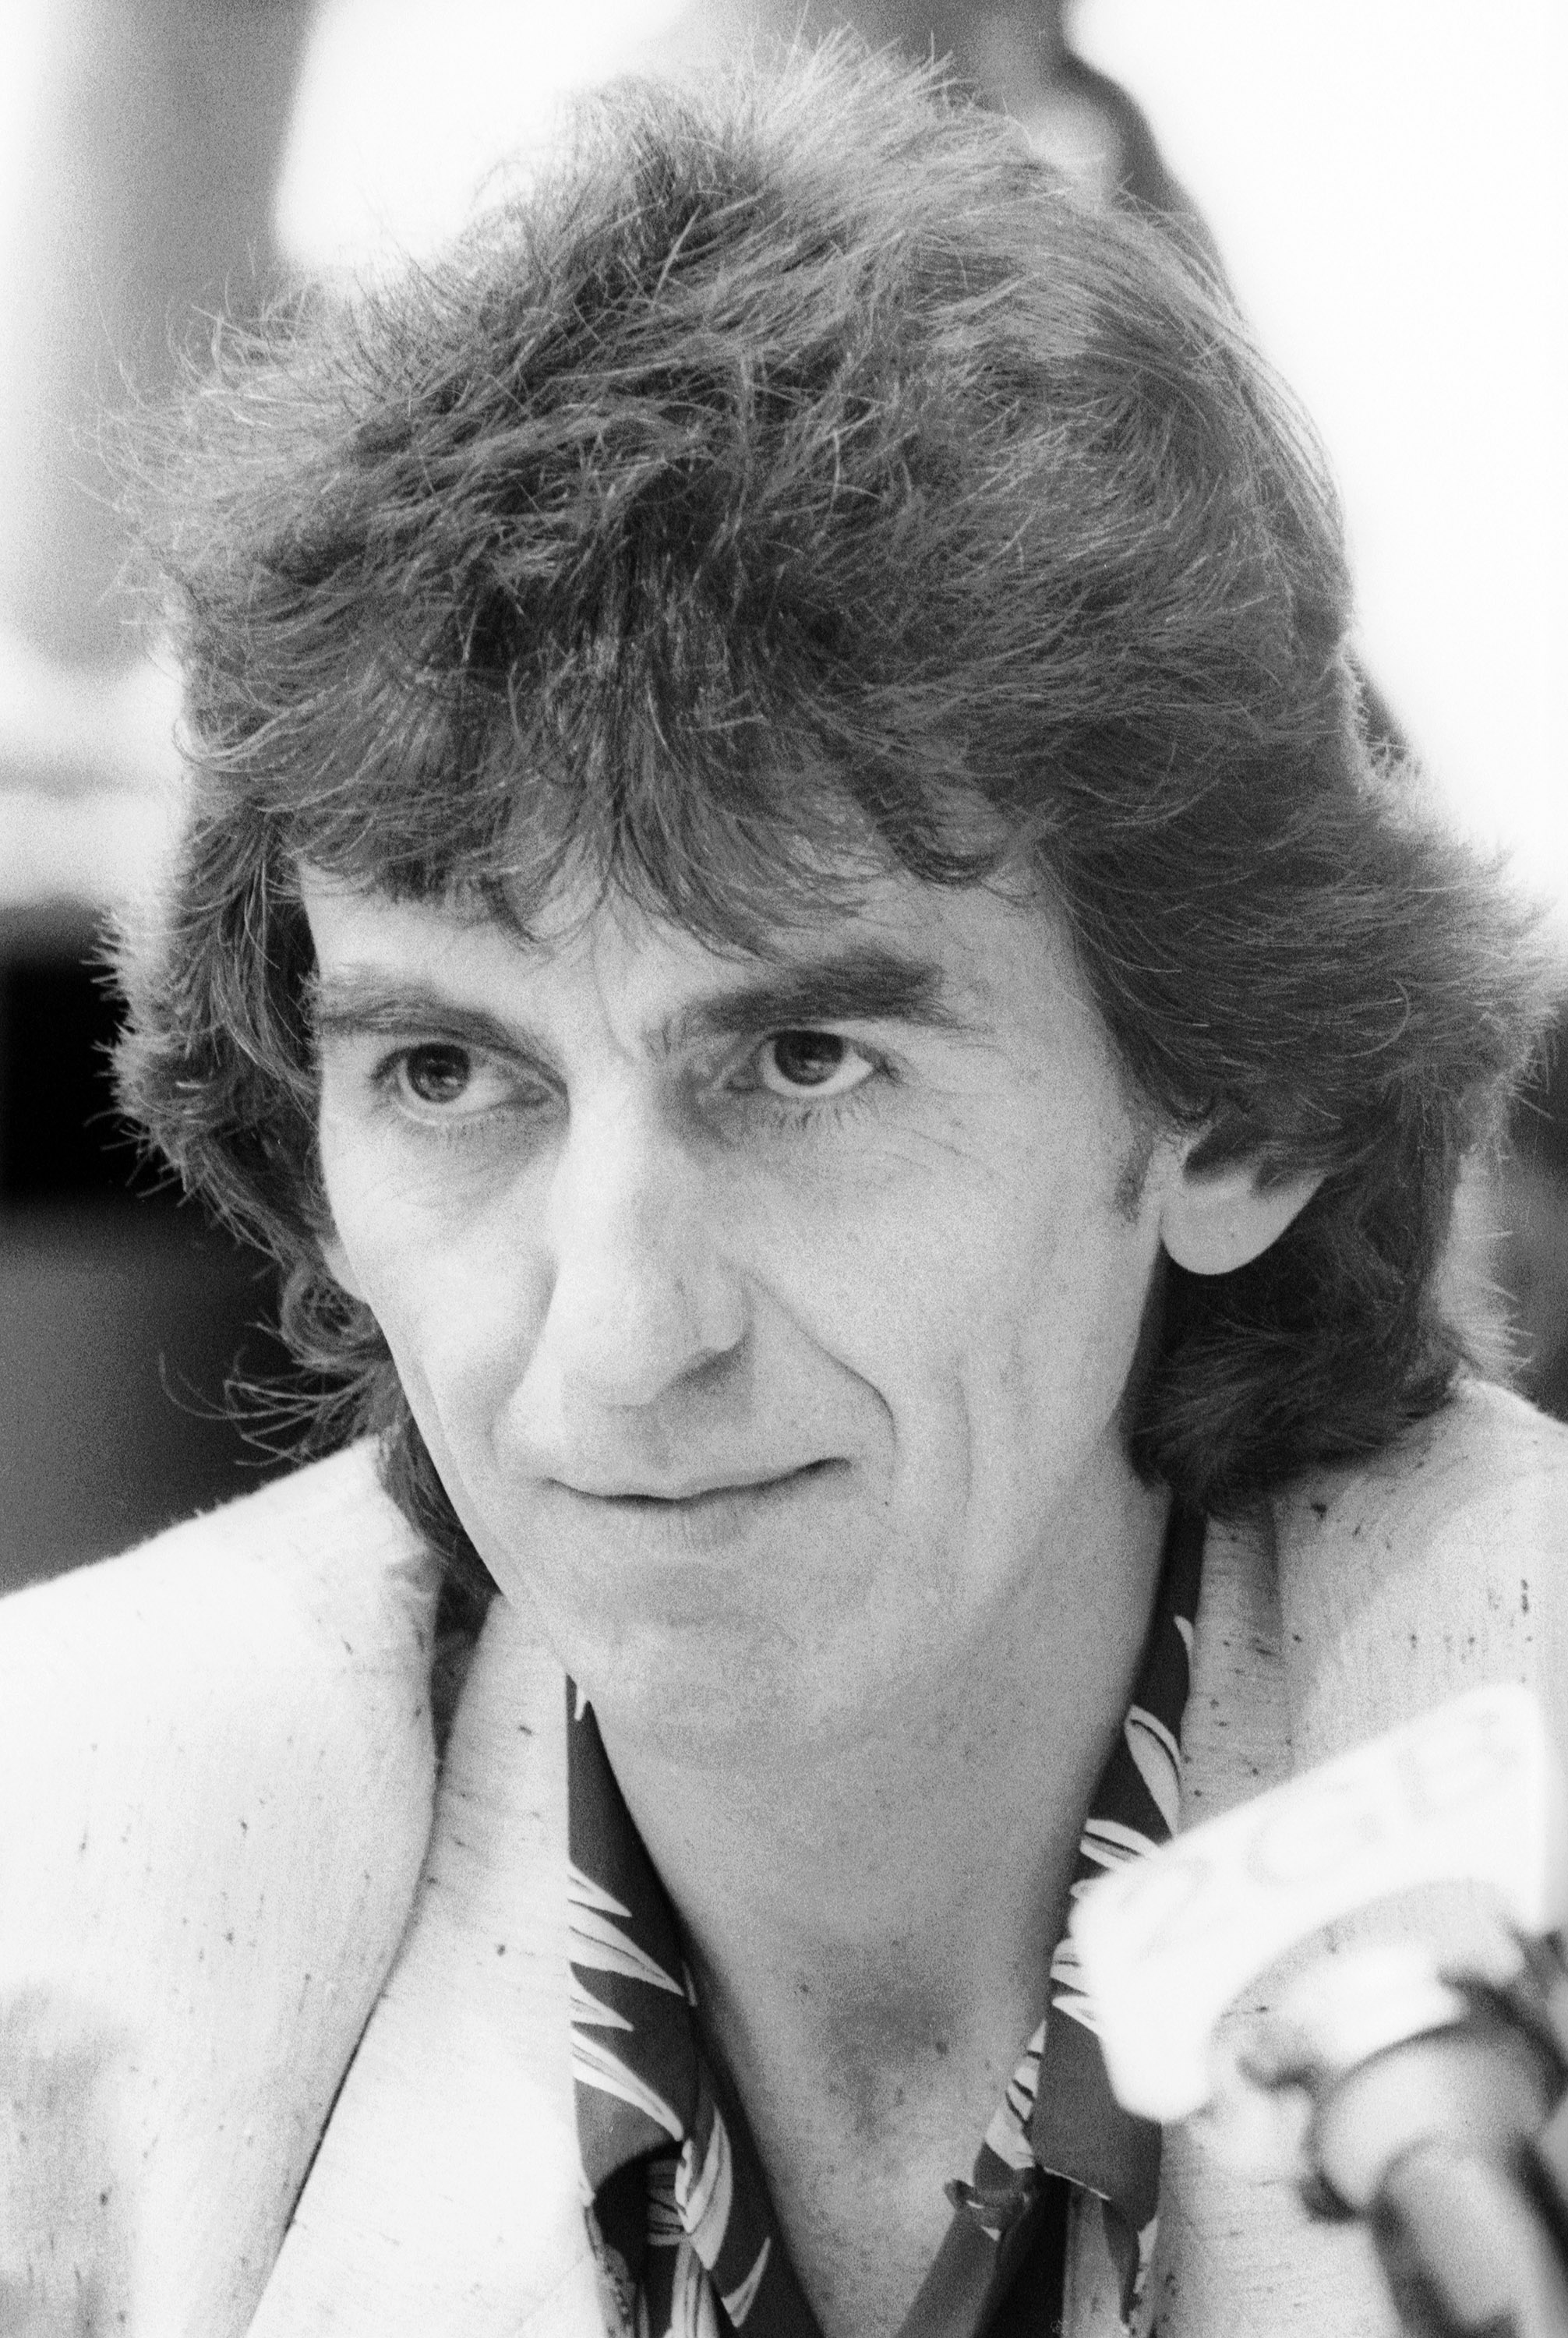 Musician and former member of 'The Beatles' George Harrison attends a press conference to launch the new book by Derek Taylor 'Fifty Years Adrift' at the Sydney Opera House on November 30, 1984